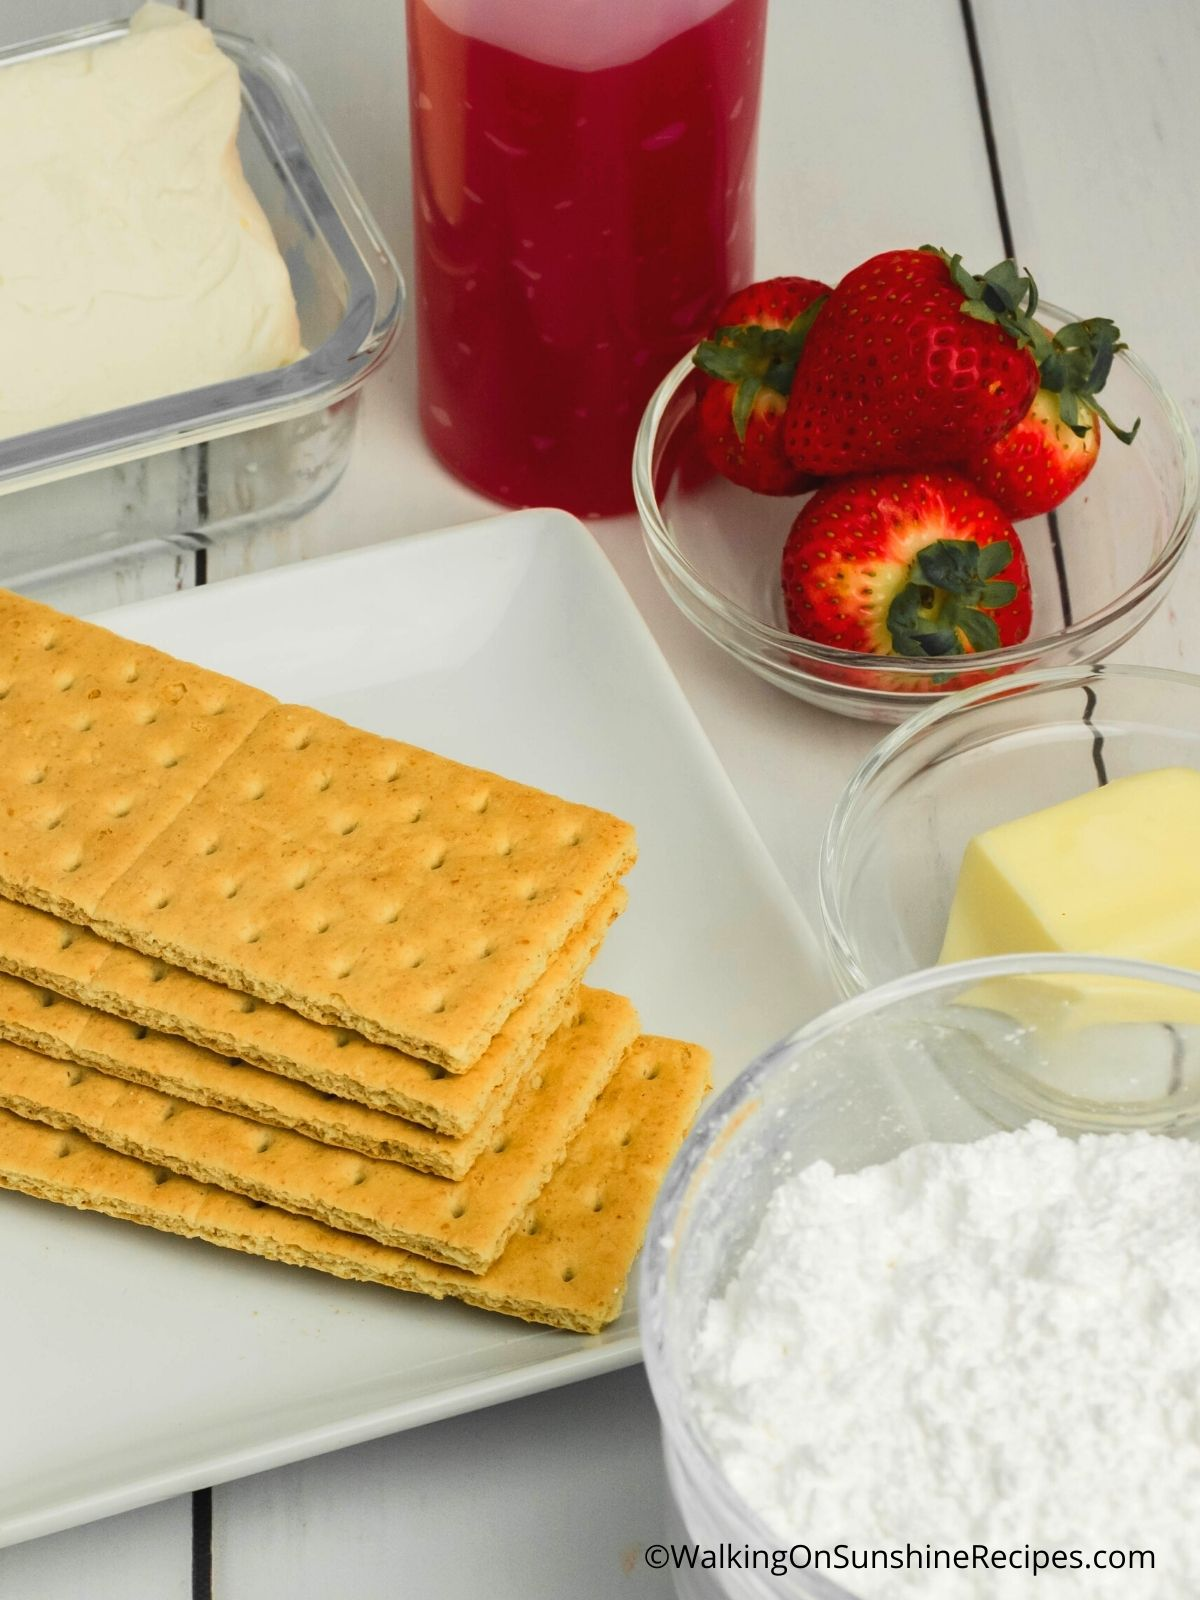 Ingredients for cream cheese vanilla pudding mini cheesecakes.